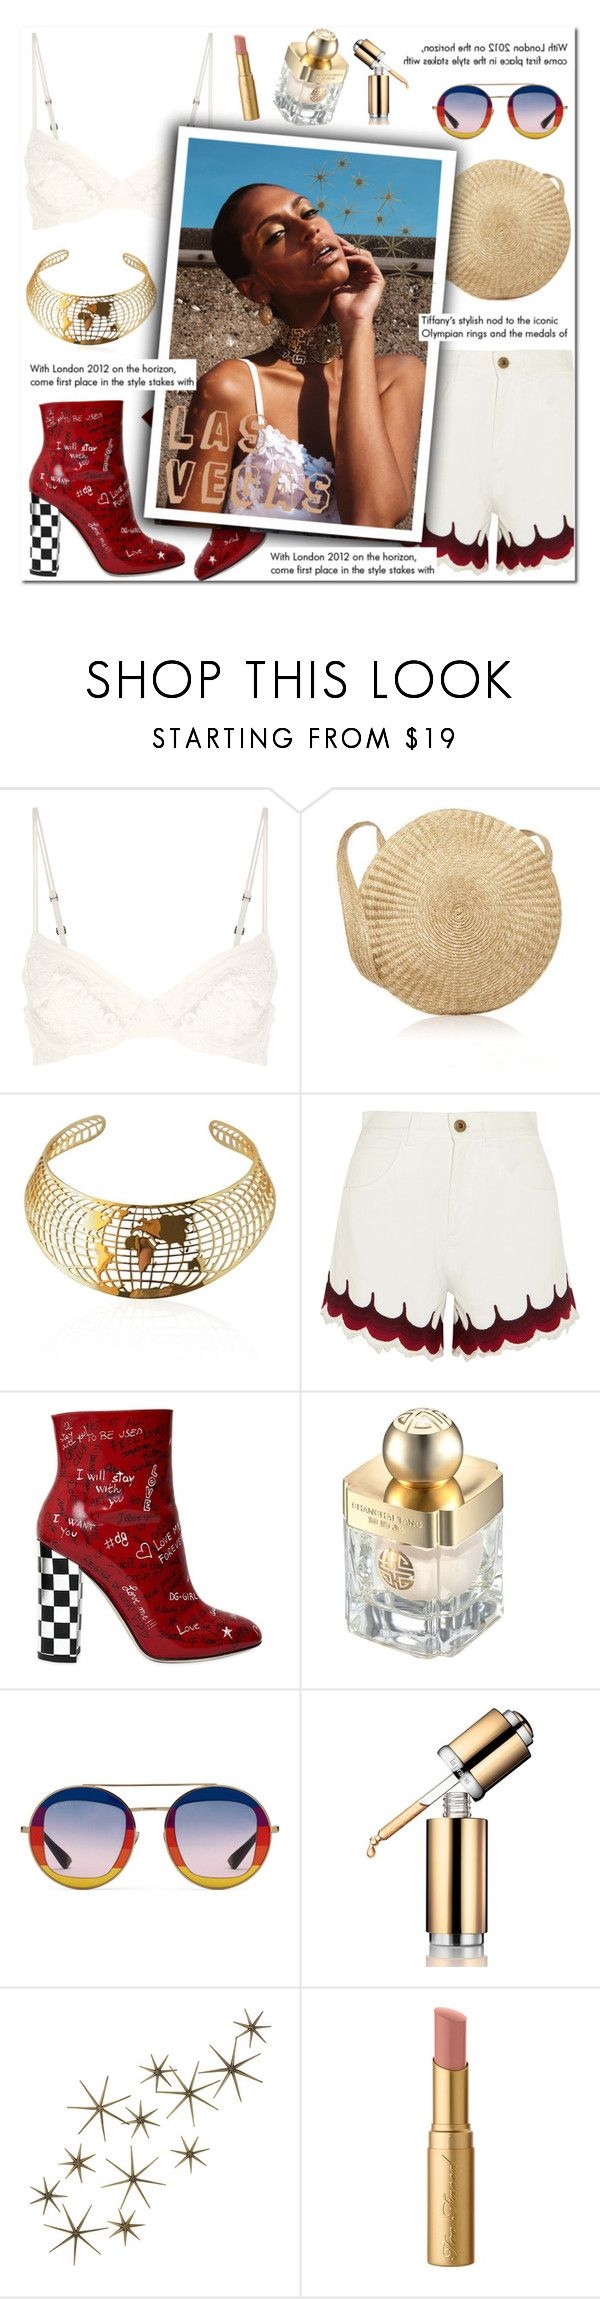 """How to Style  White Embellished Denim Shorts with a White Lace Bra Top, Red Summer Booties, a Straw Bag and Gold Choker for Travel to Las Vegas this Summer"" by outfitsfortravel ❤ liked on Polyvore featuring Chloé, Dolce&Gabbana, Shanghai Tang, Gucci, La Prairie, Global Views, Tiffany & Co. and Too Faced Cosmetics"